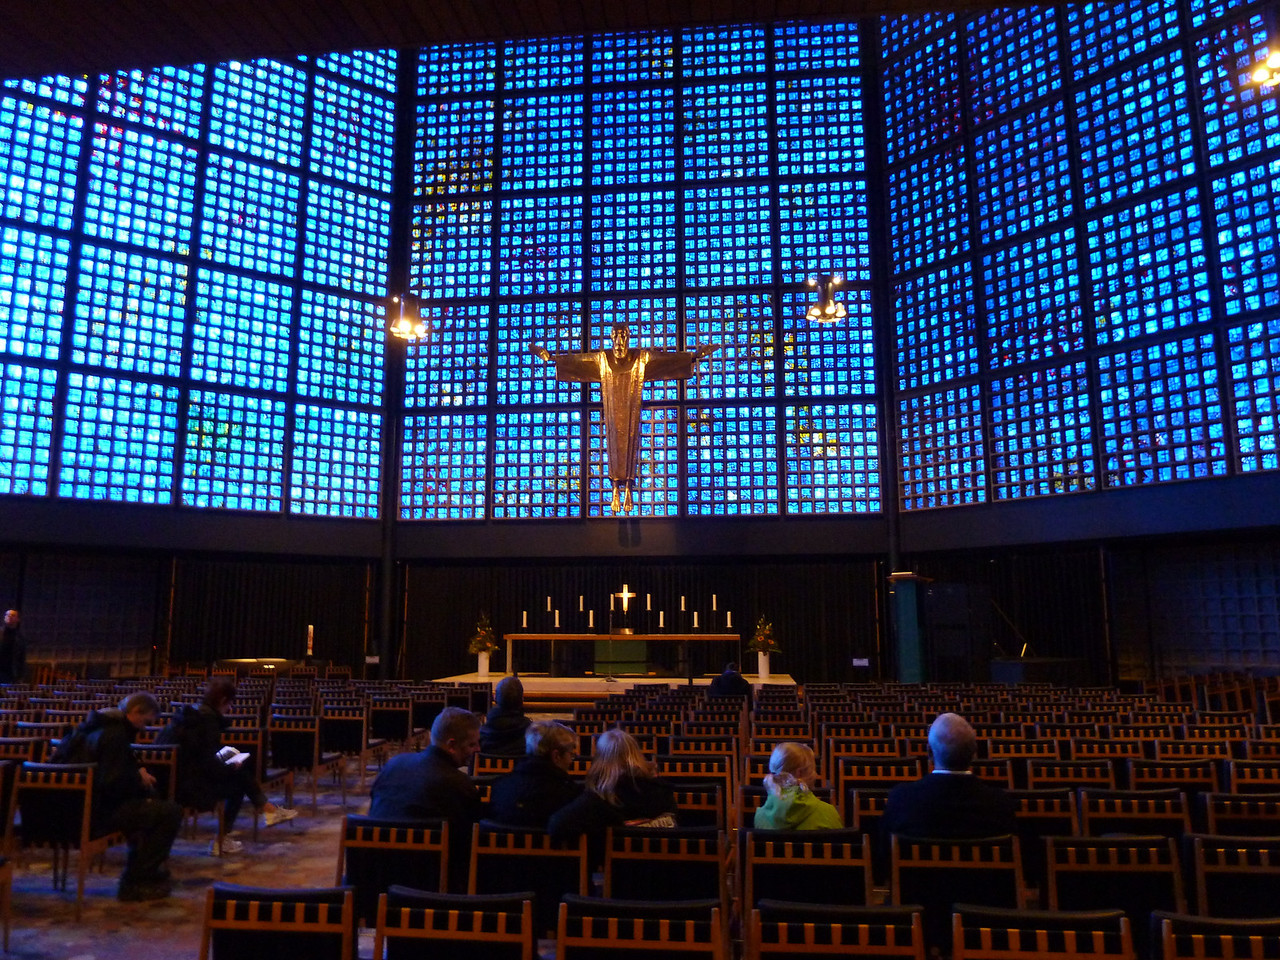 """The very impressive """"Gedächniskirche"""" (Memorial Church) in Berlin, built around the ruins of a former Berlin cathedral to commemorate the victims of WW II."""